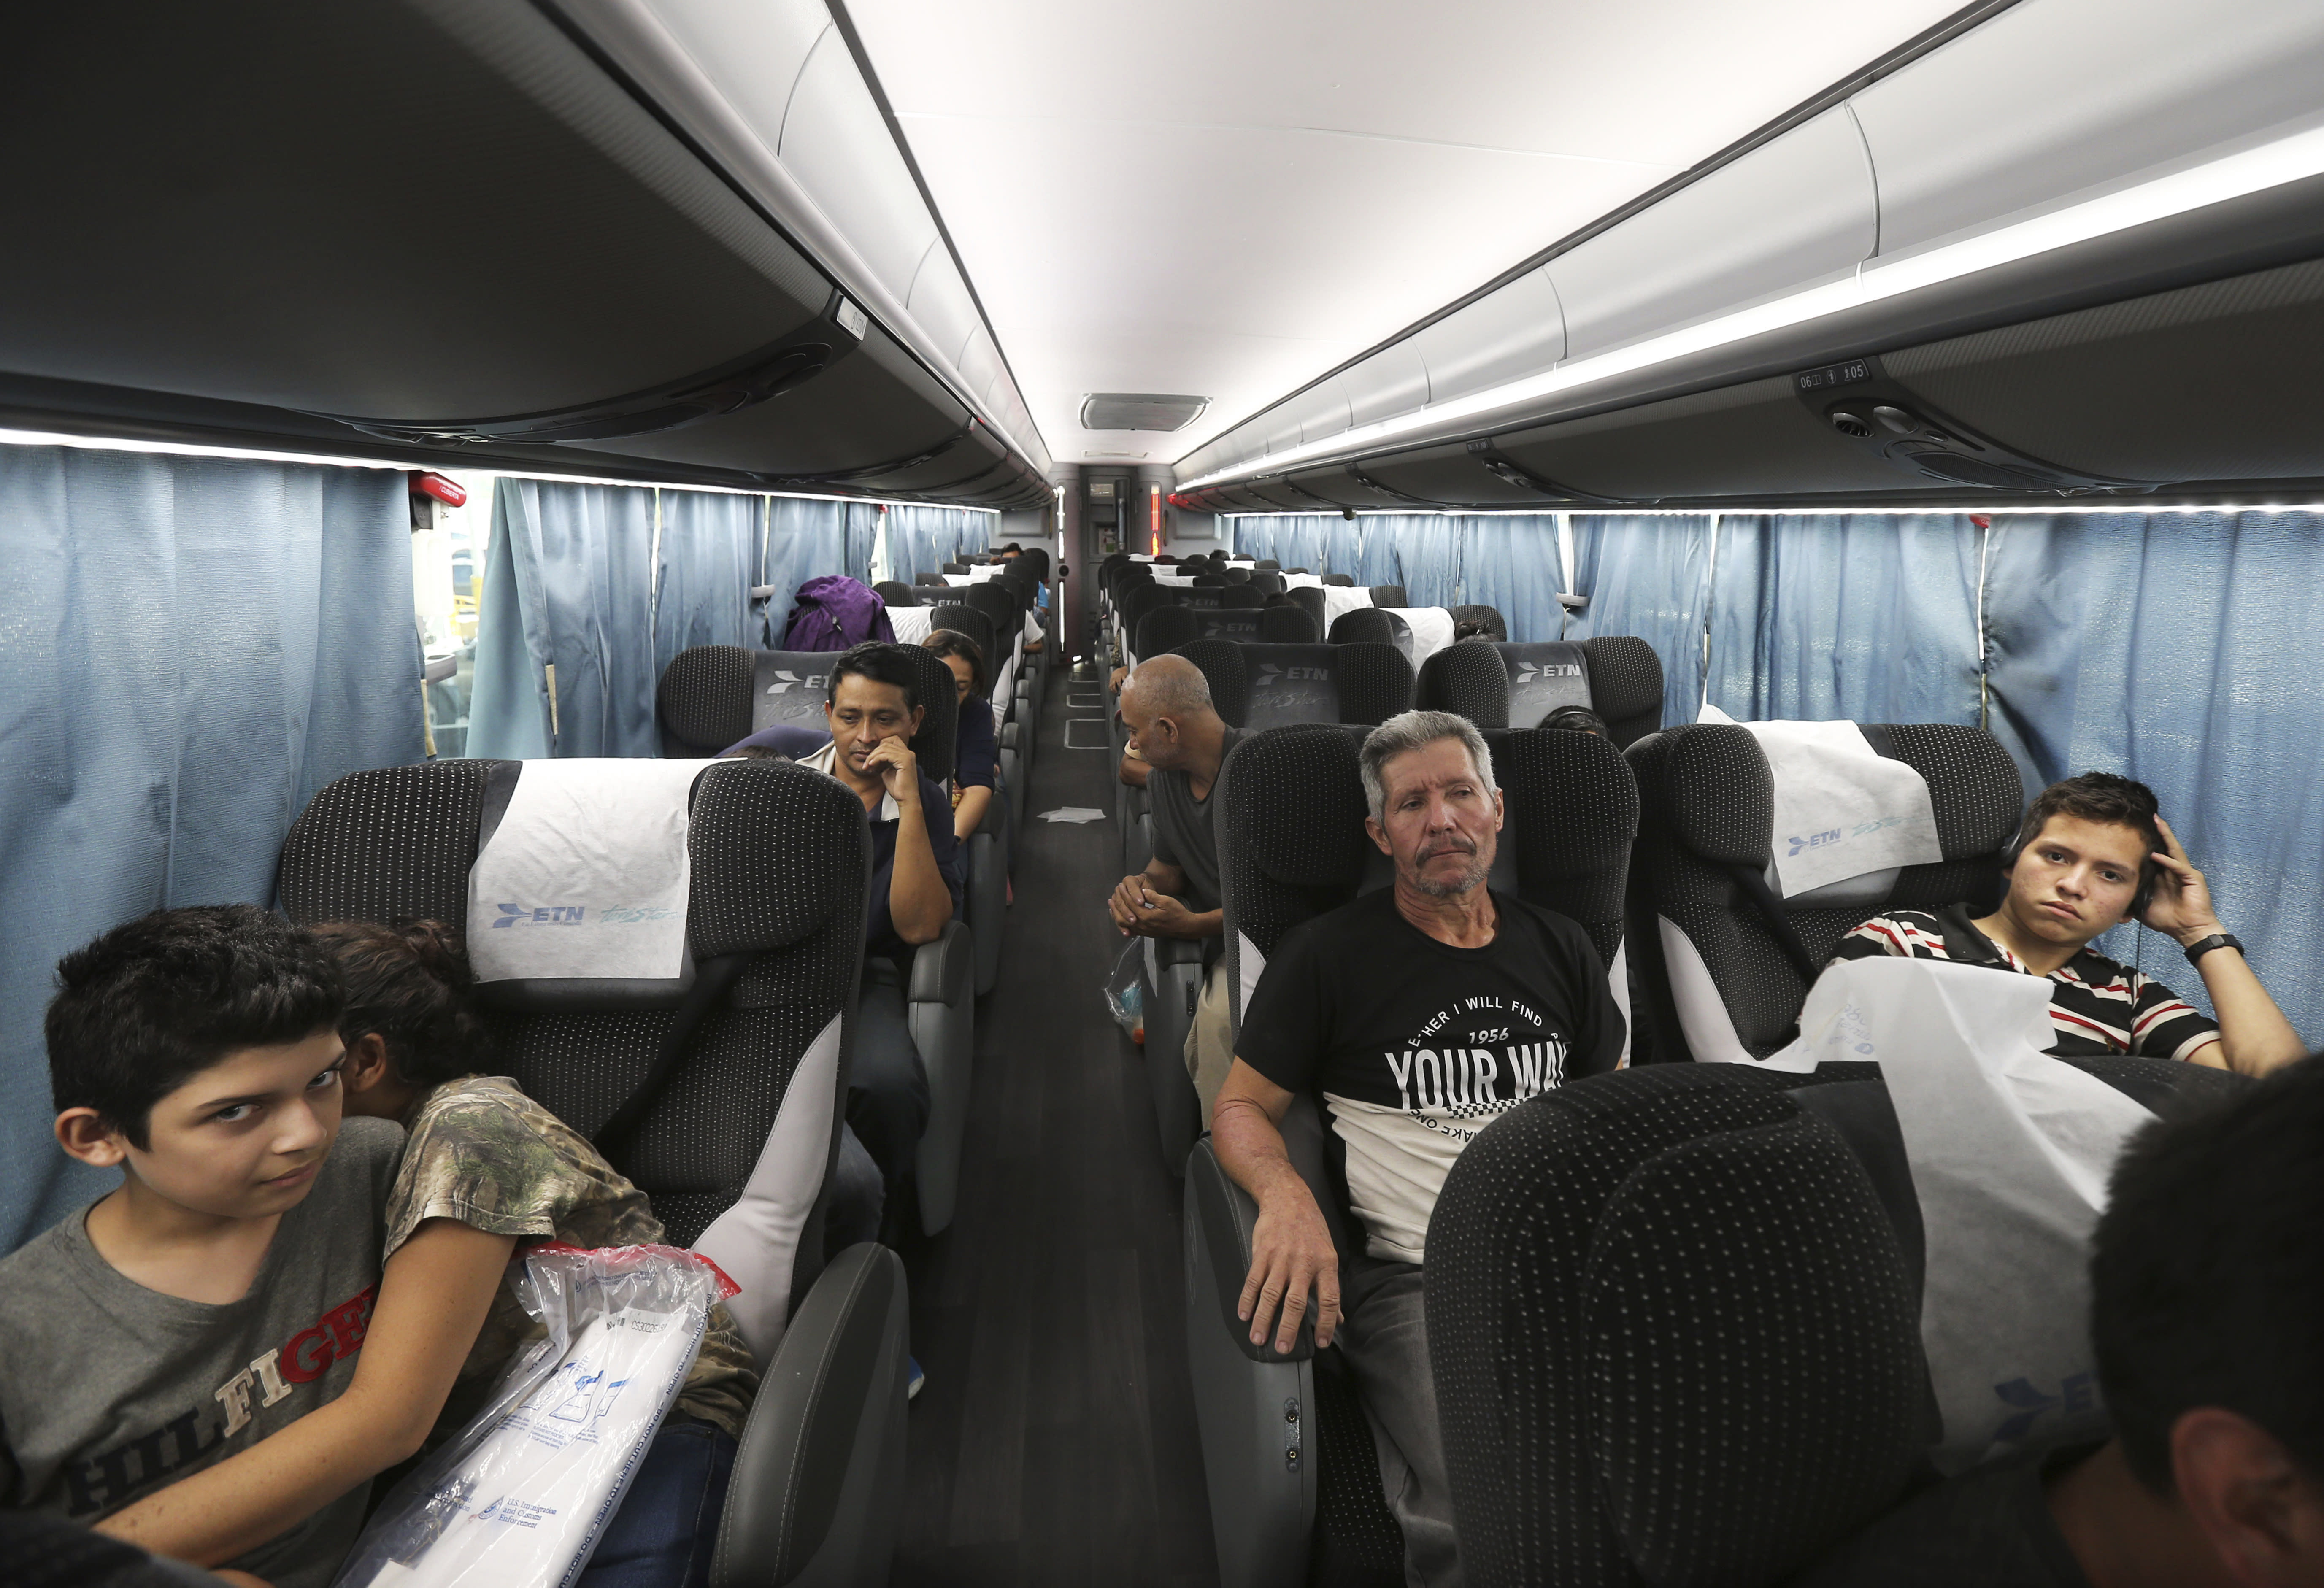 In this July 18, 2019 photo, migrants sit in a bus that will take them and other migrants to Moneterrey, from an immigration center in Nuevo Laredo, Mexico. In Monterrey they found a city where shelters are already overflowing and it quickly became clear that it would be up to them to make do as best as they could. (AP Photo/Marco Ugarte)